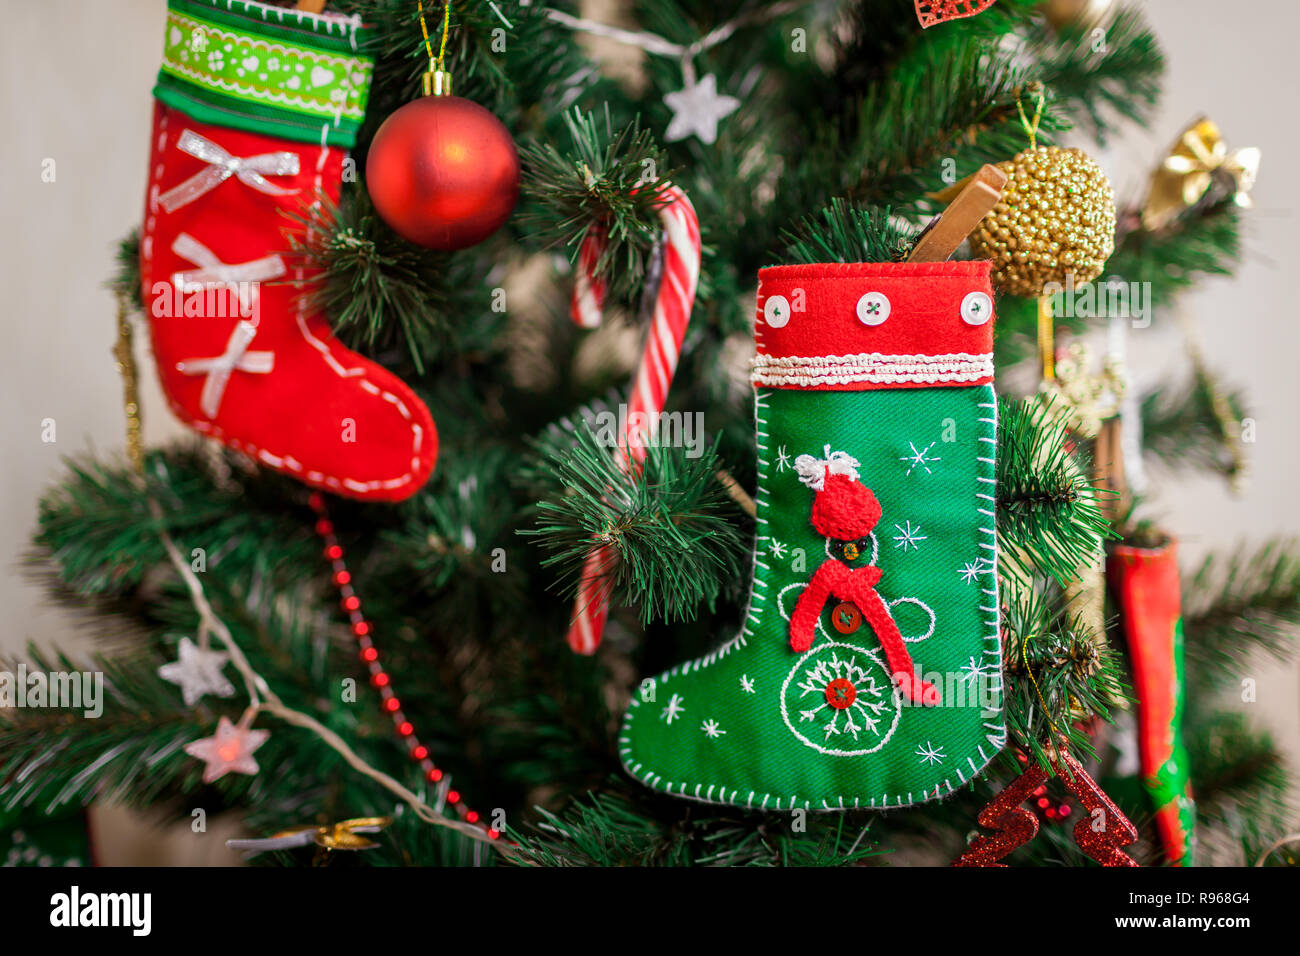 Decorated Christmas Fireplace On A Brick Wall Stock Photo Image Hanging Garland Stock Photos & Hanging Garland Stock